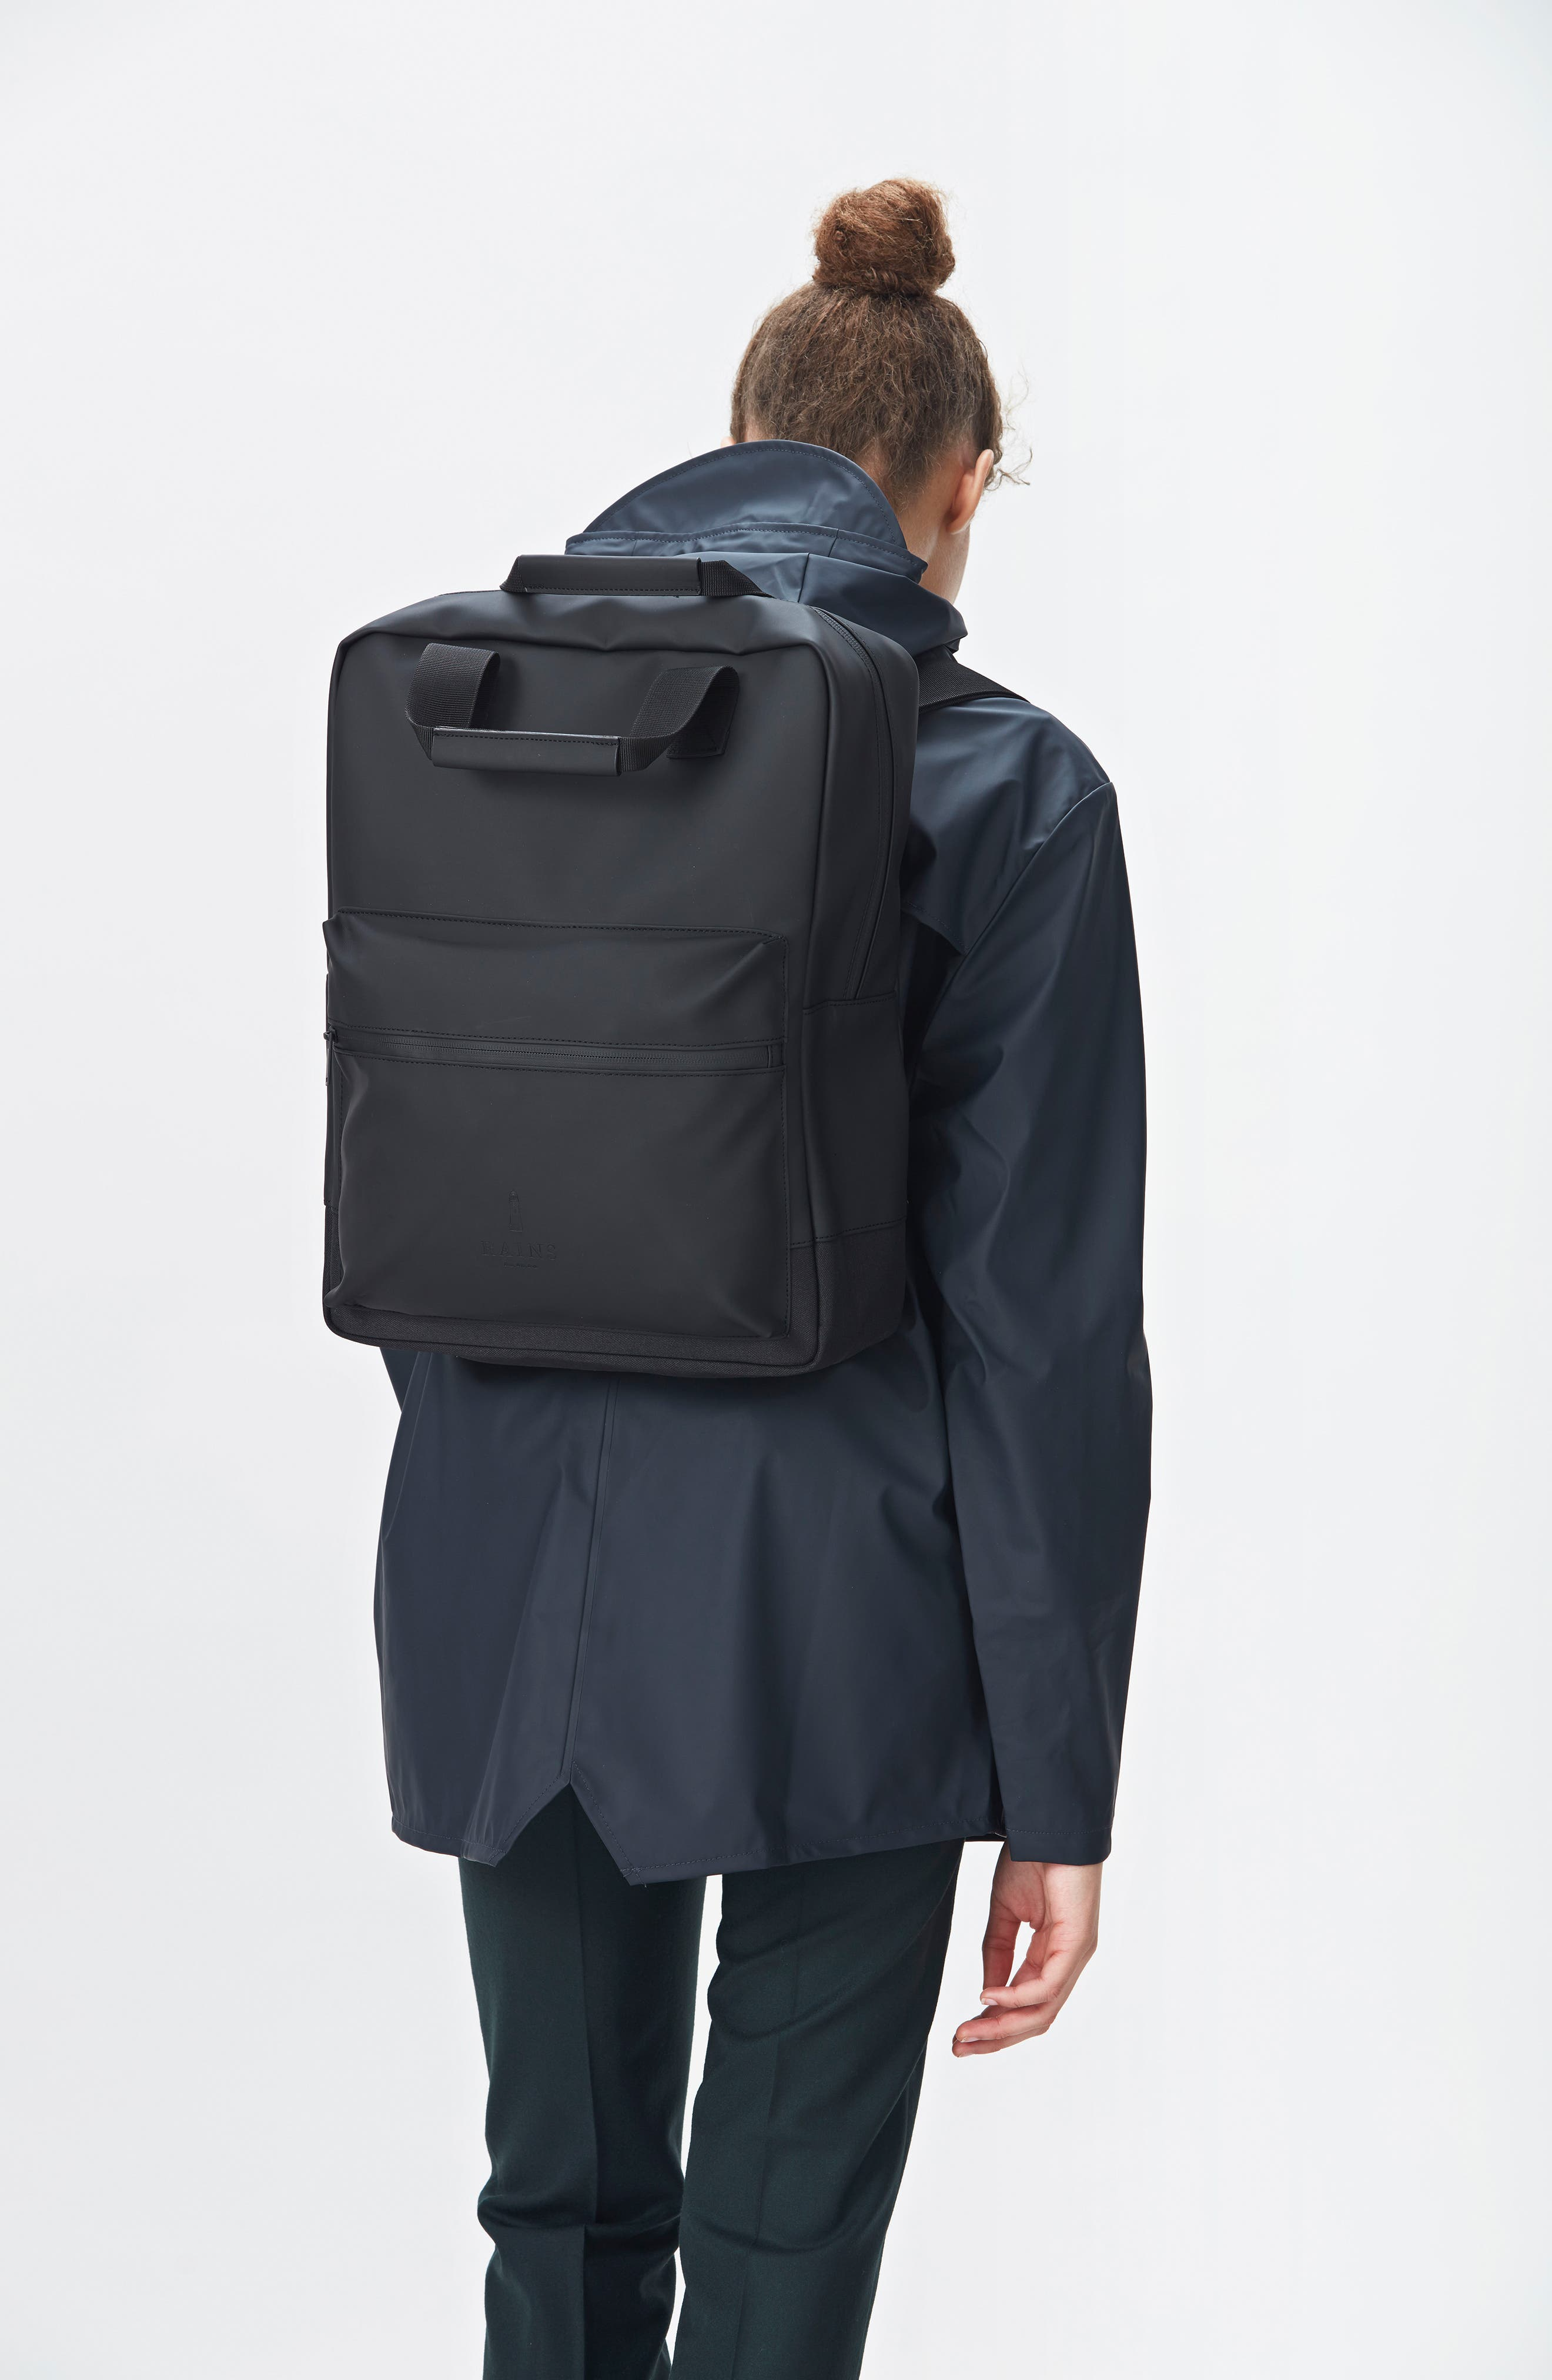 Scout Backpack,                             Alternate thumbnail 8, color,                             BLACK